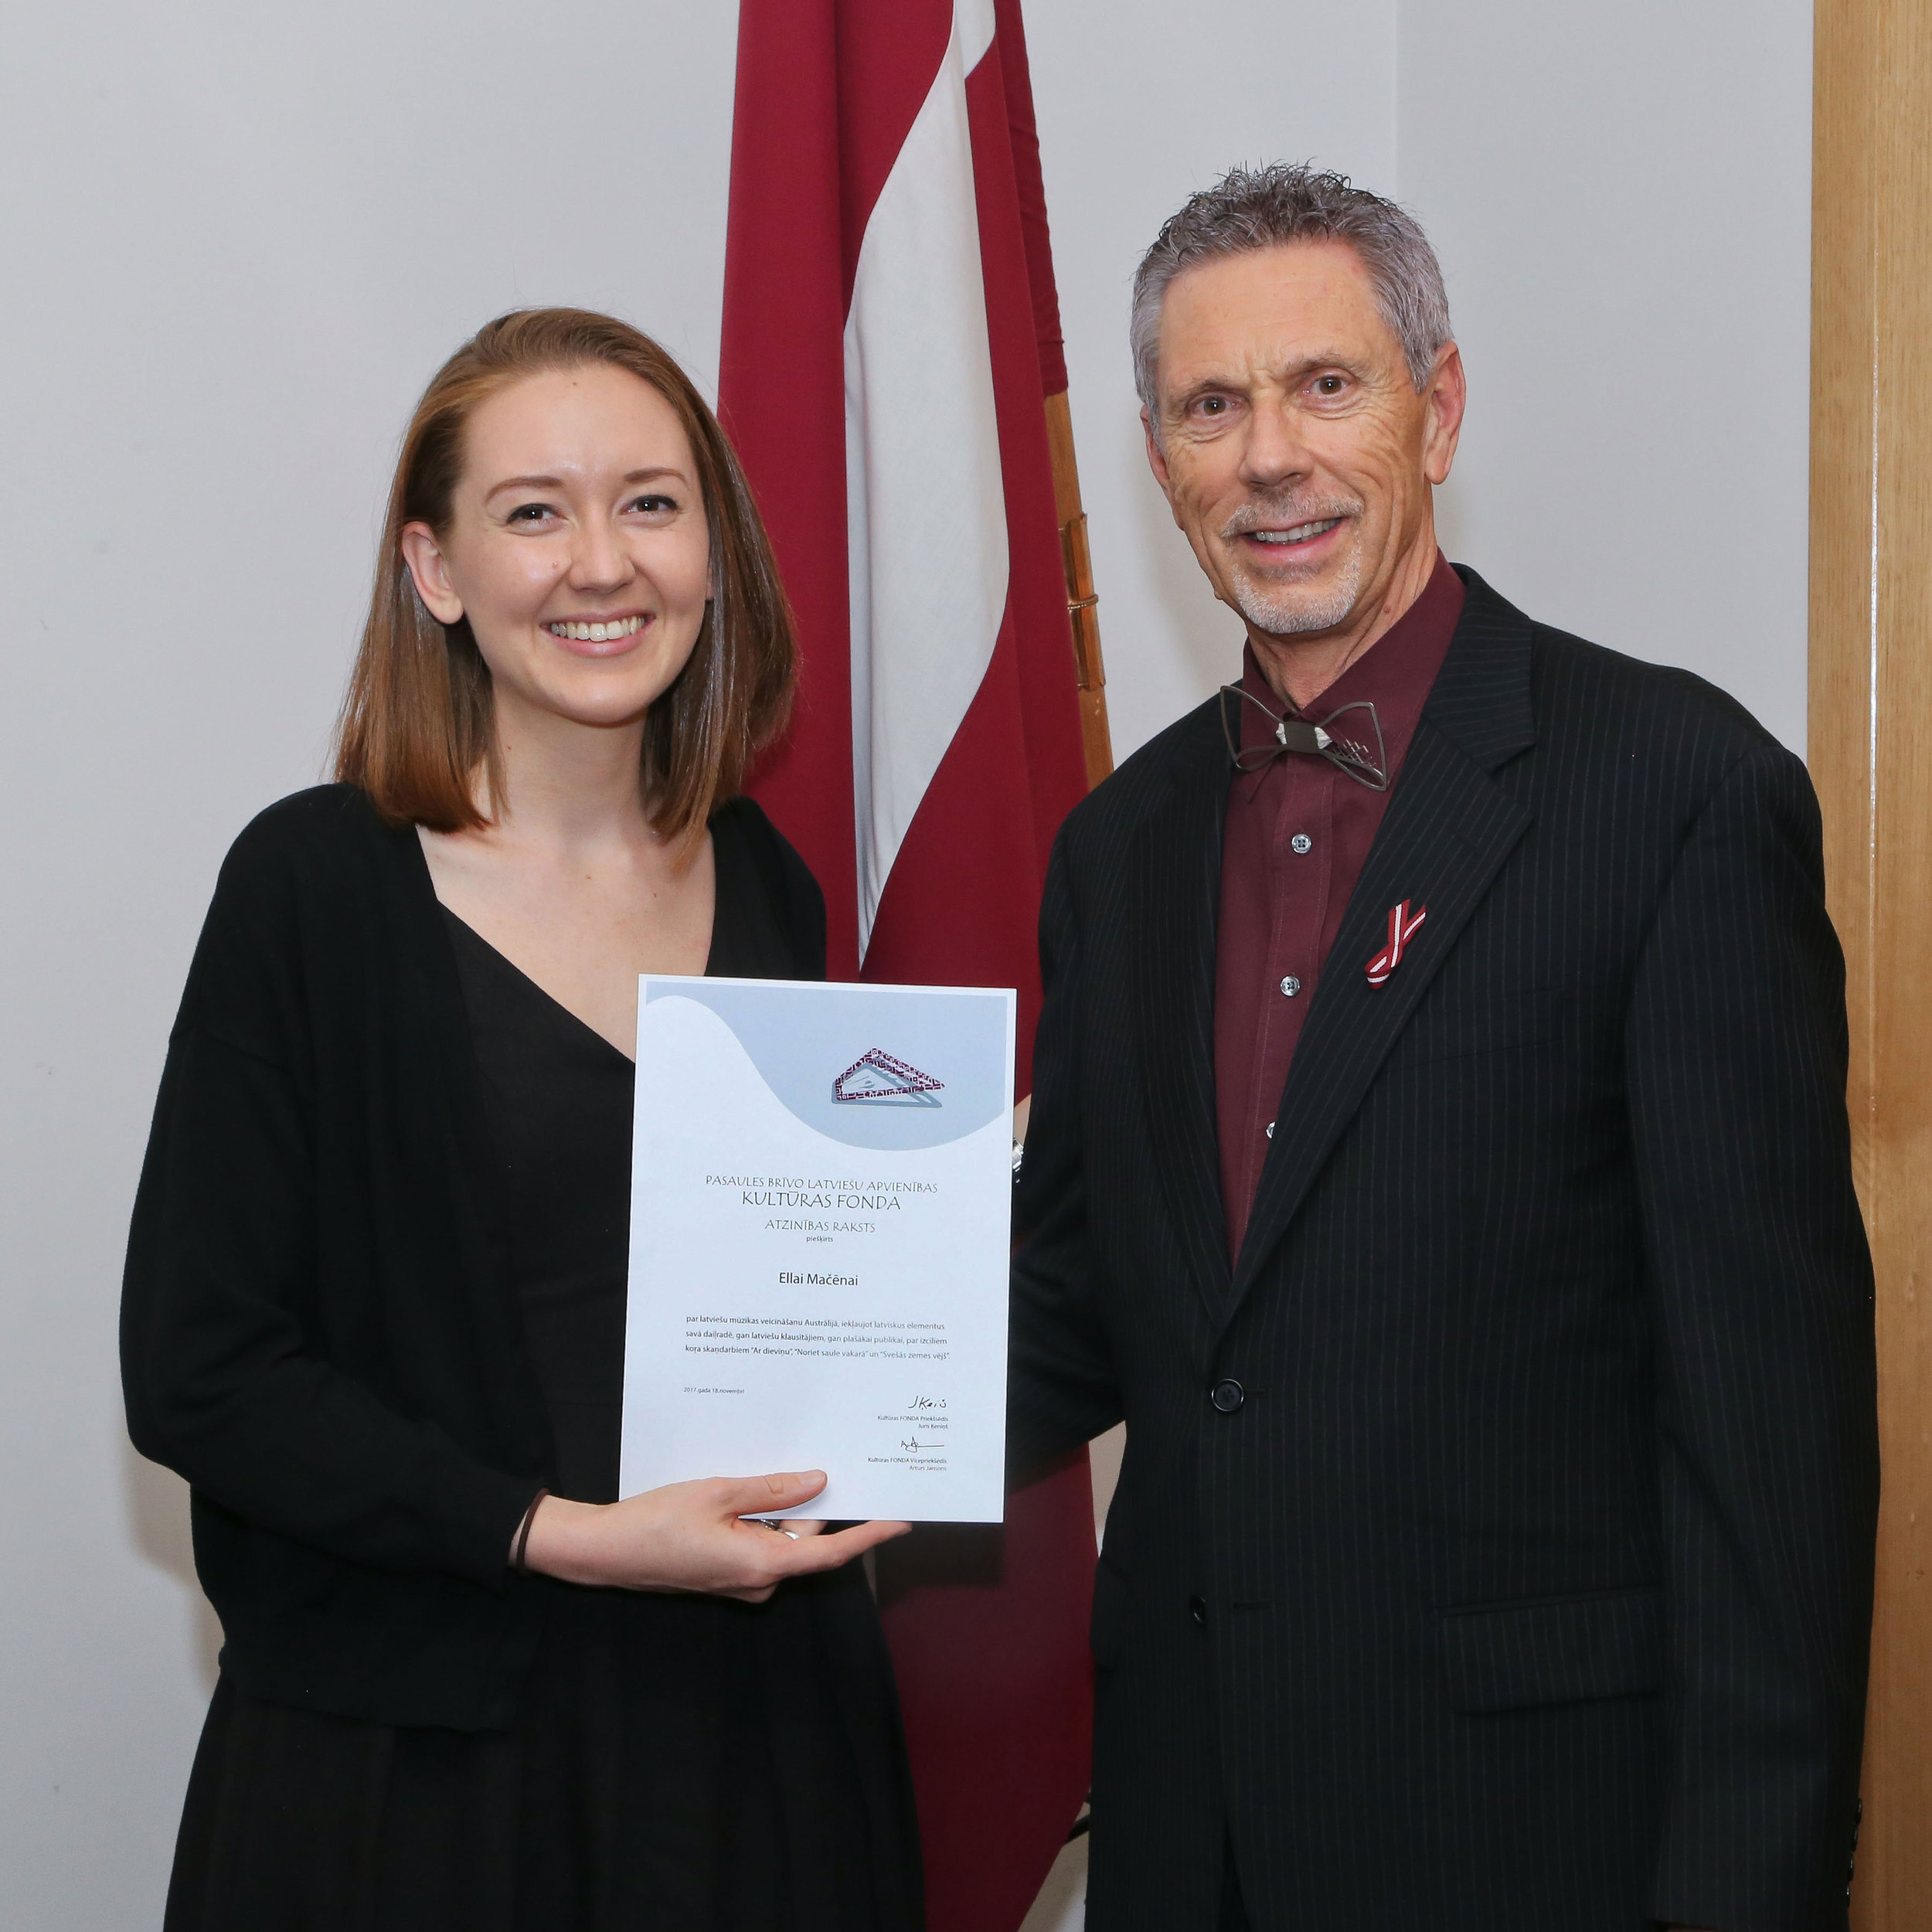 Receiving my award from the World Federation of Free Latvians in 2017